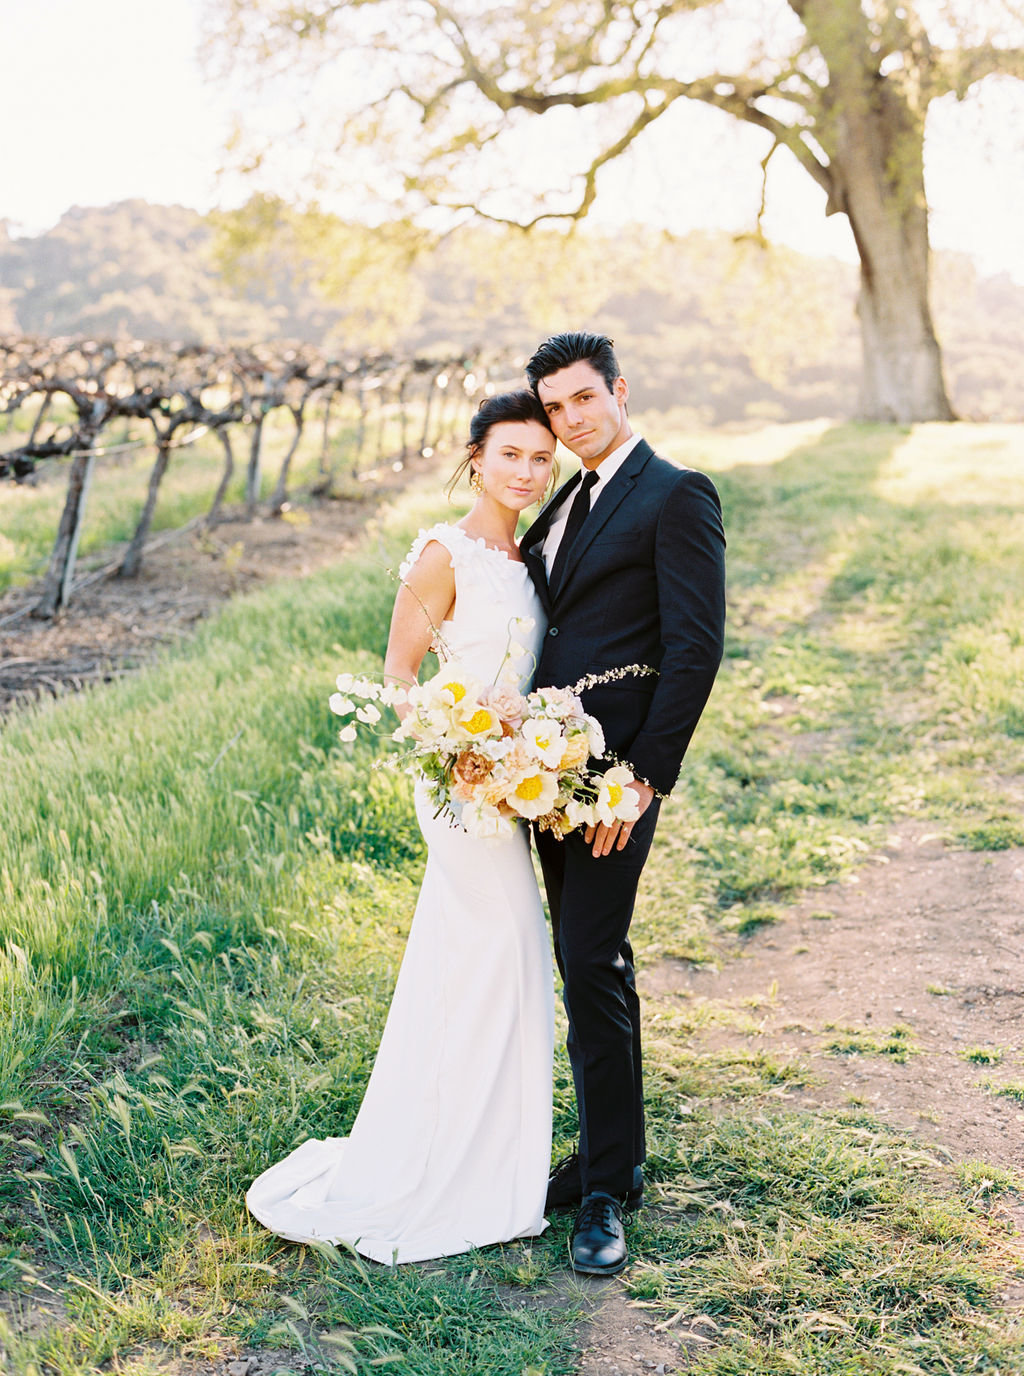 Hammersky-Vineyards-Wedding-by-San-Luis-Obispo-Wedding-Planner-Embark-Event-Design-61